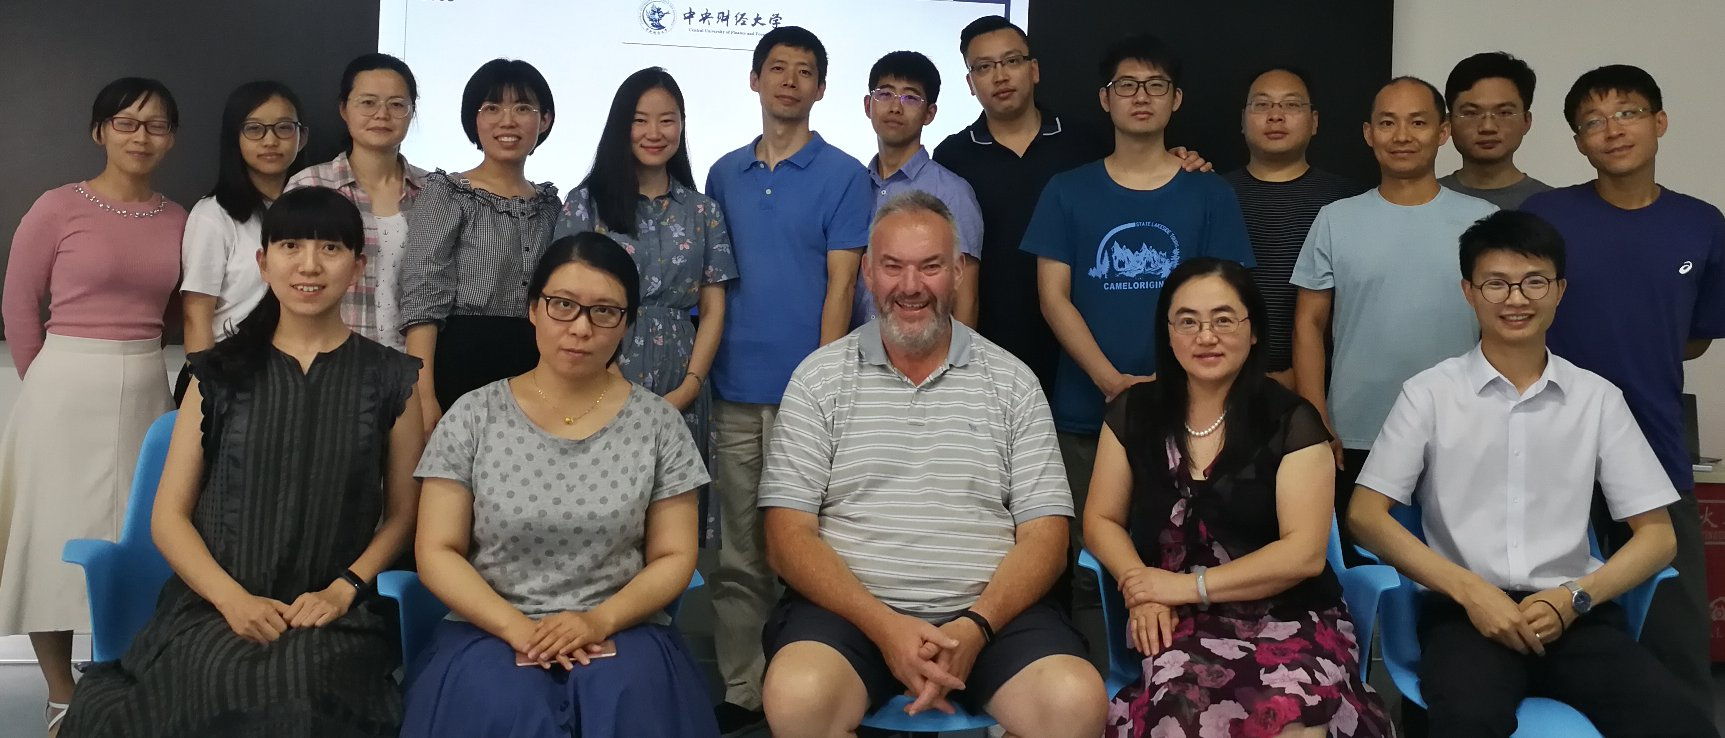 July 2019 CGE course held at Central University of Finance and Economics, Beijing